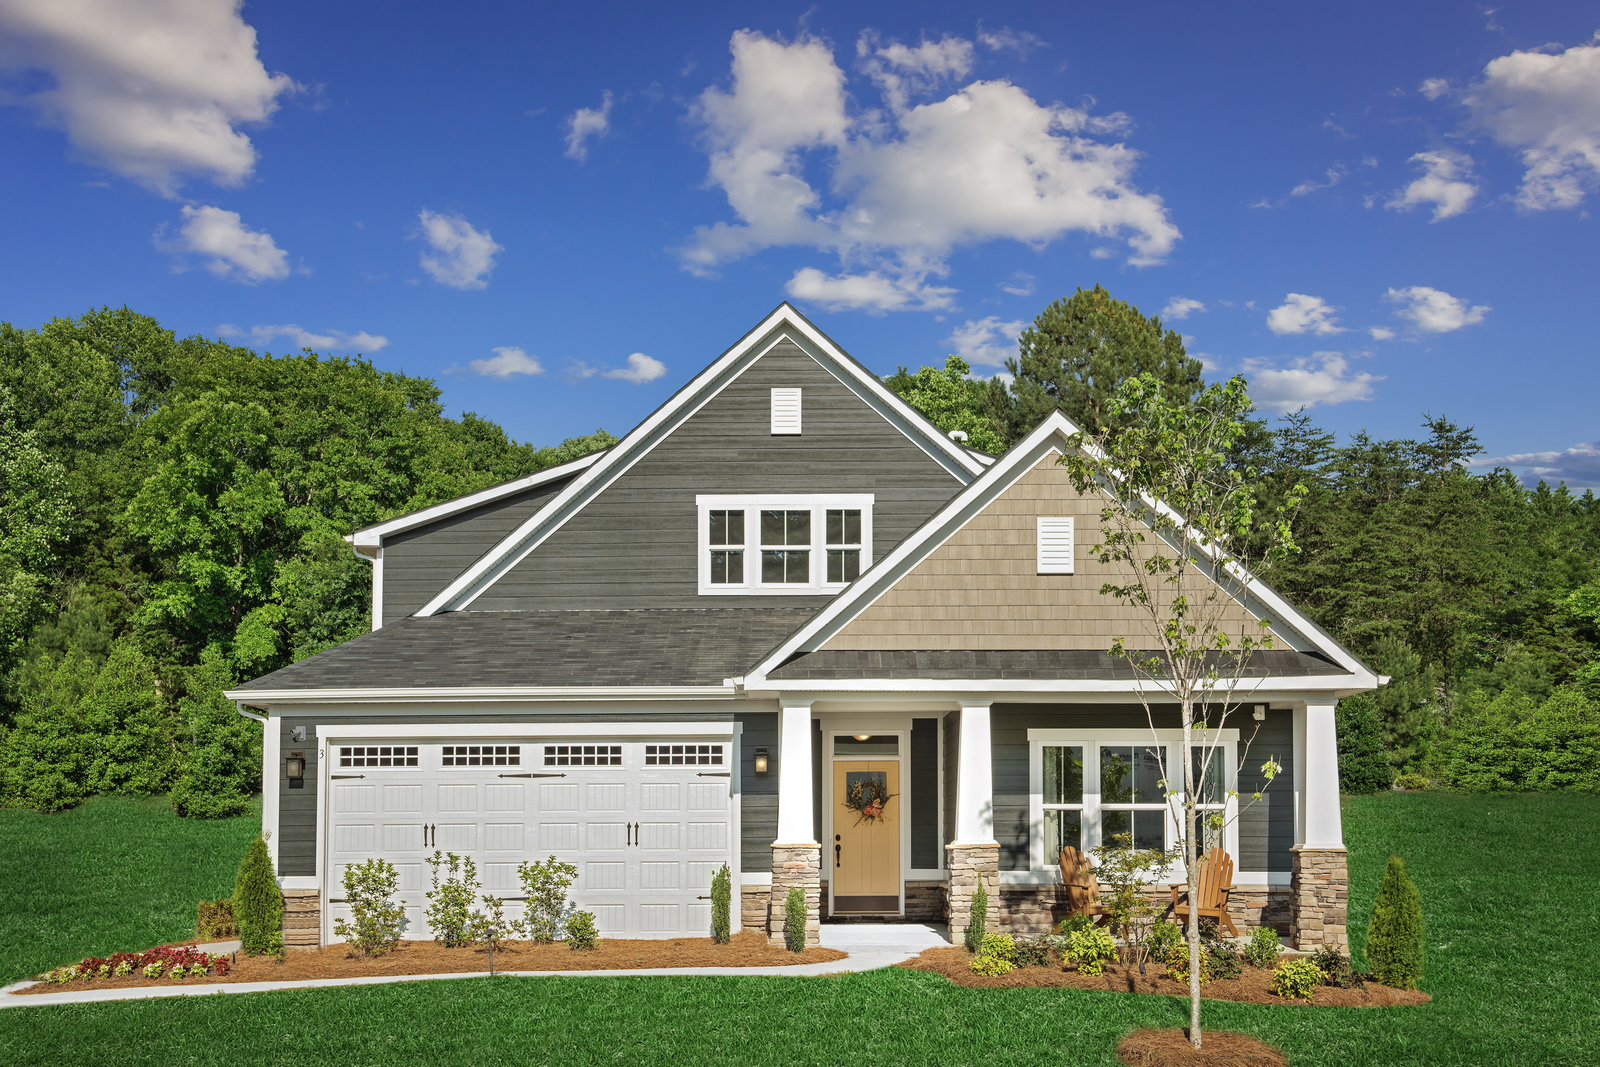 New Homes for sale at Briar Oaks in Simpsonville, SC within